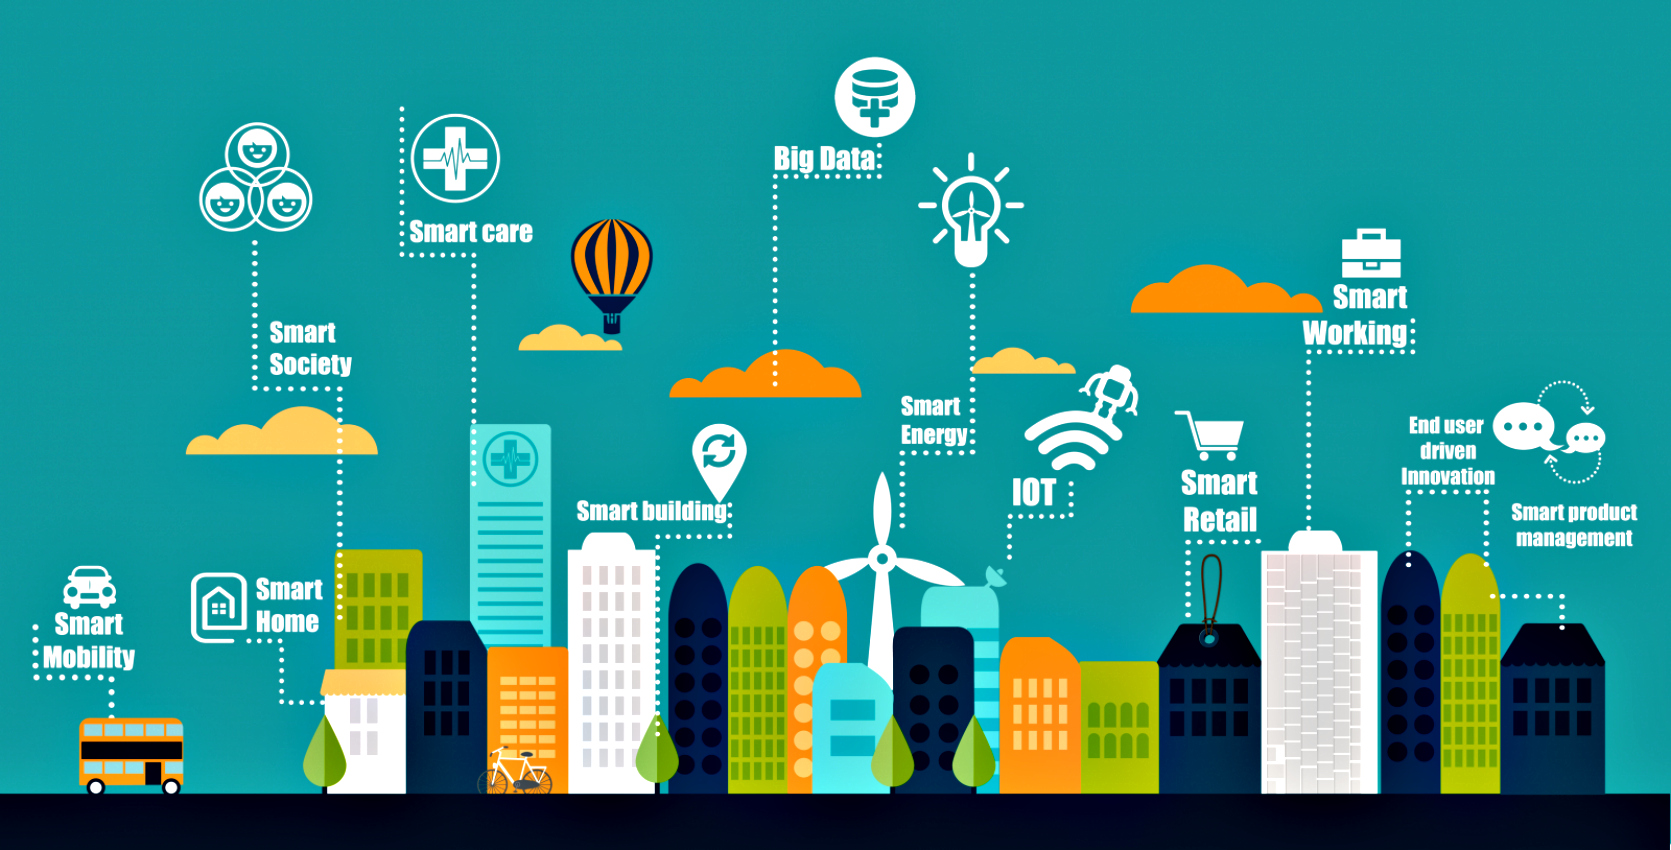 10 pitches of Startupbootcamp's Smart City & Living Demo Day